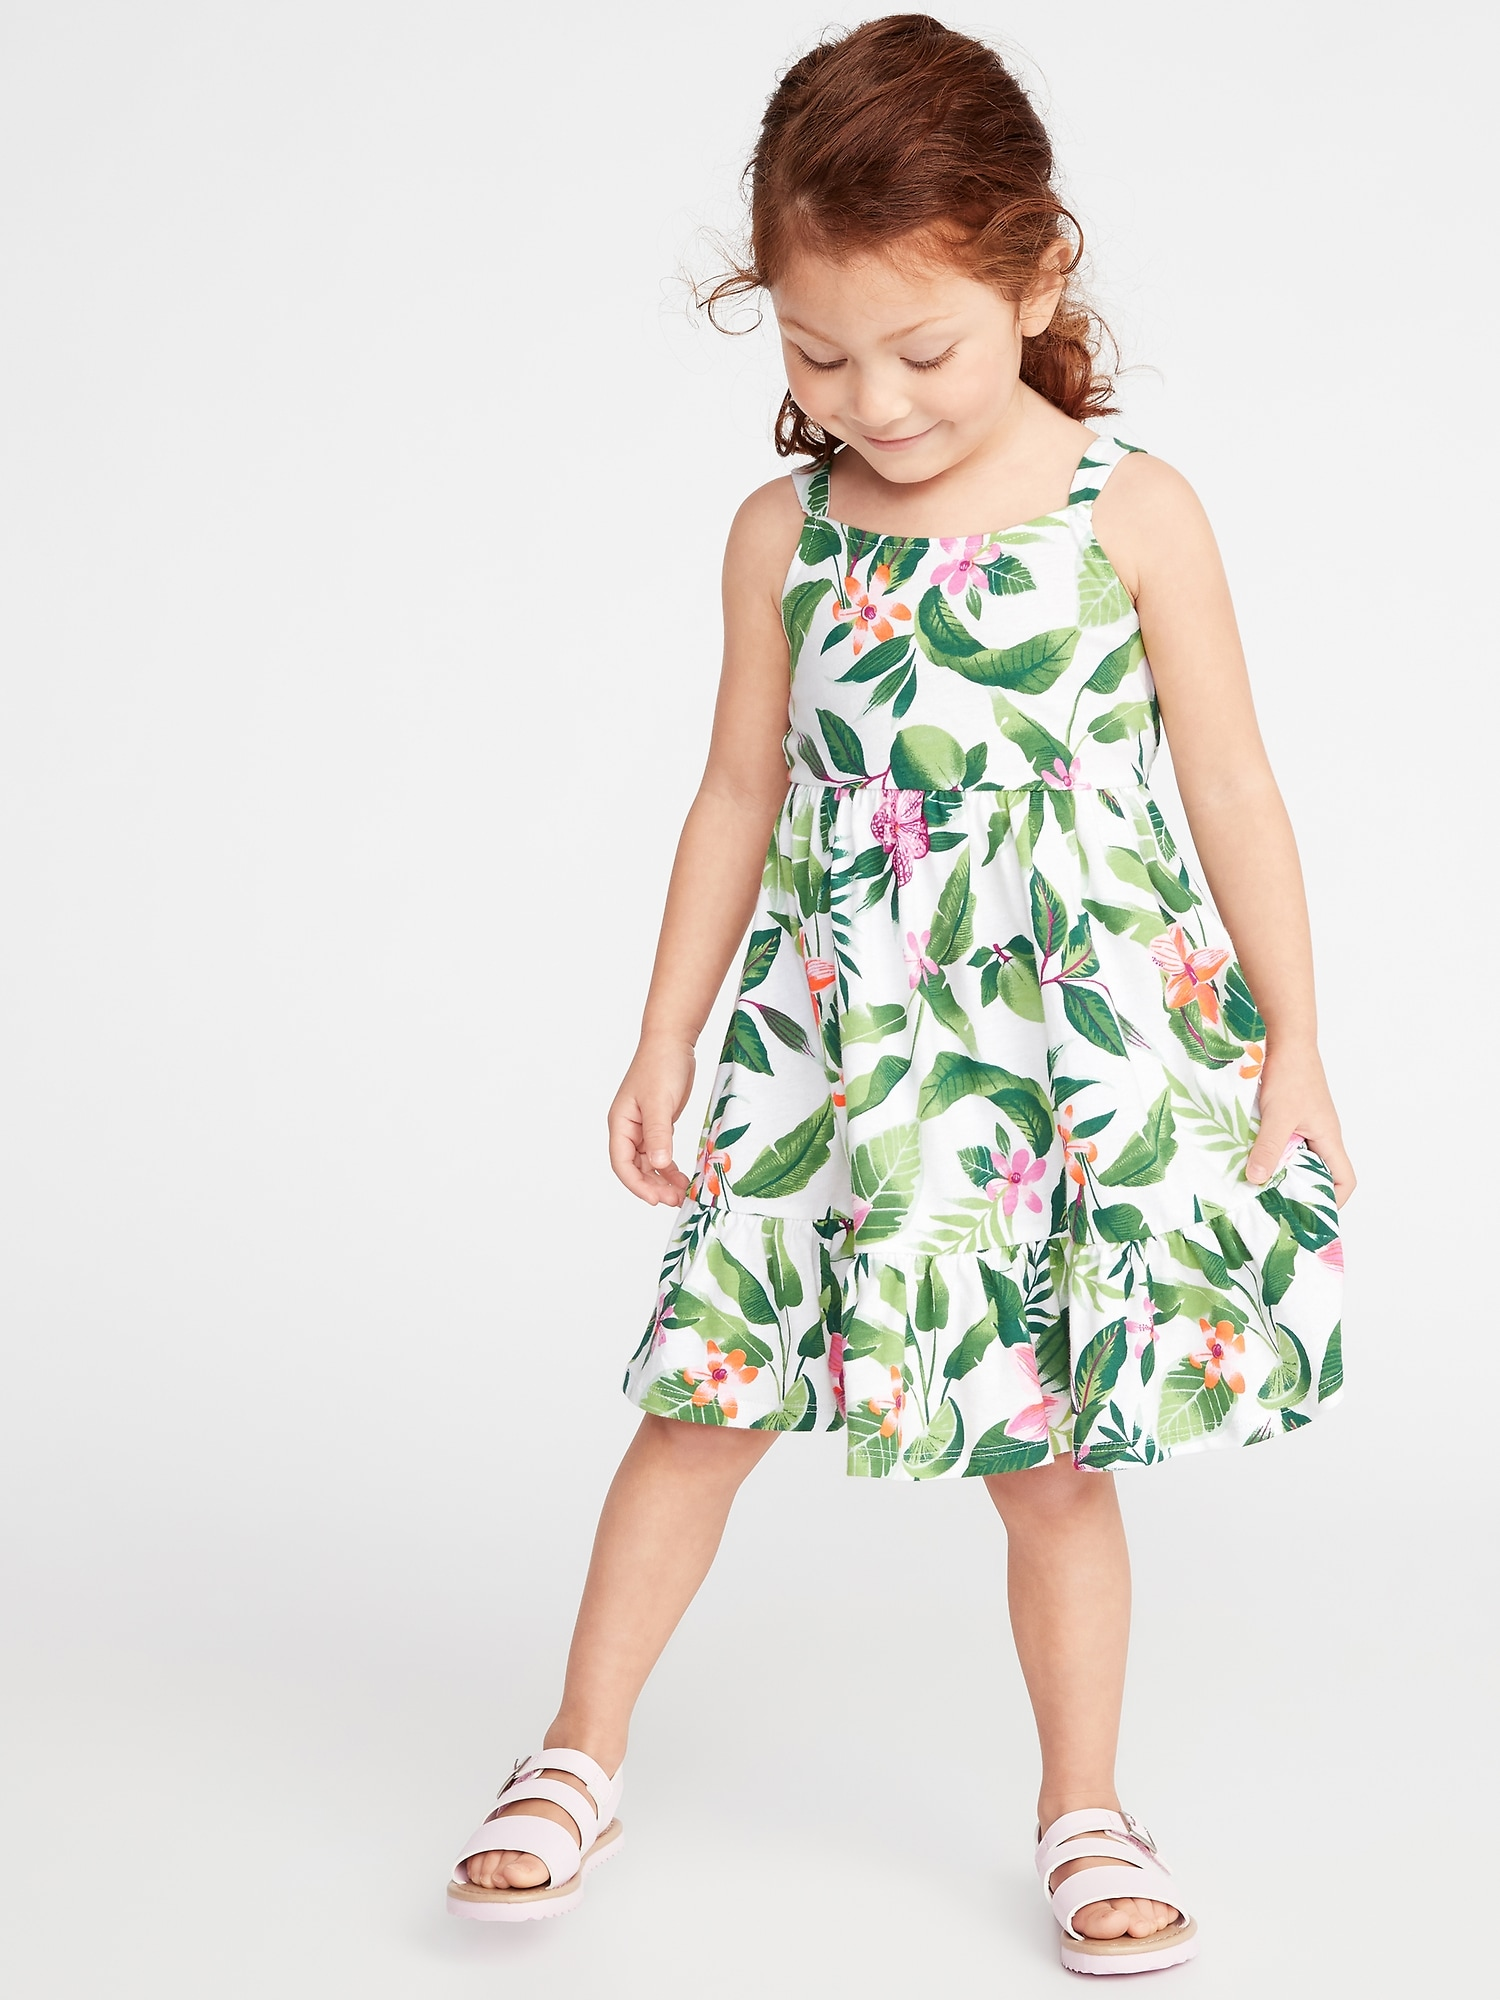 b68705f3a8d1c Printed Jersey Fit & Flare Dress for Toddler Girls | Old Navy